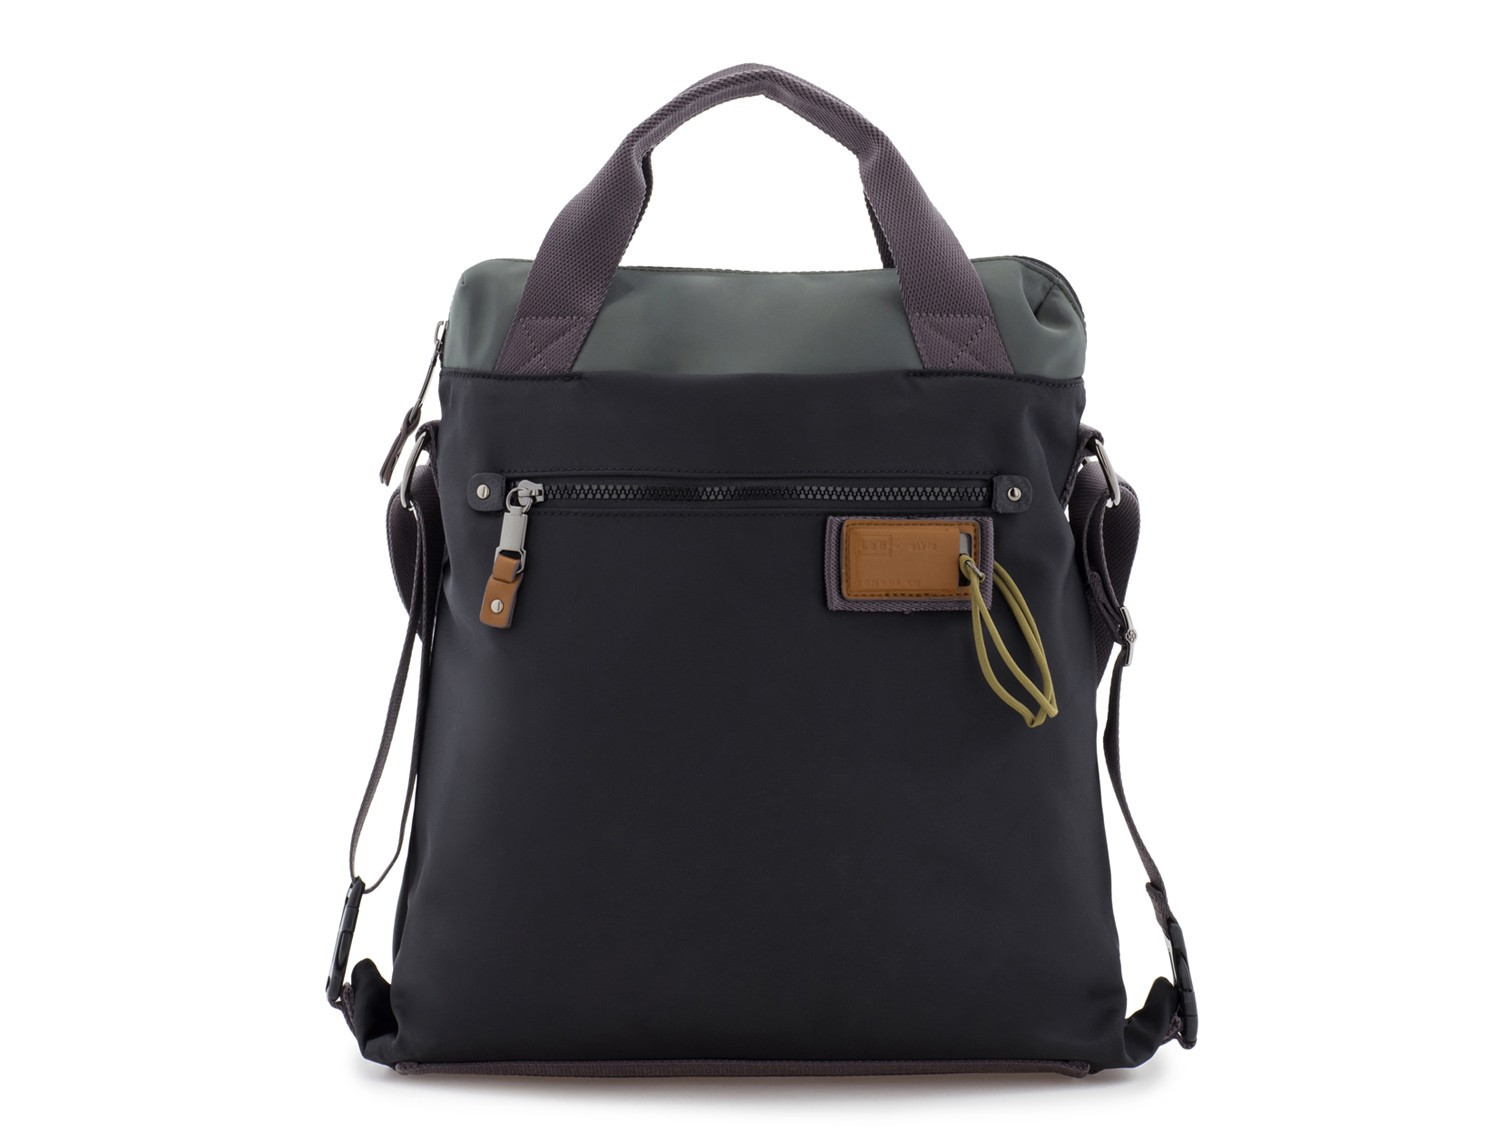 Bag convertible into backpack in black and gray front